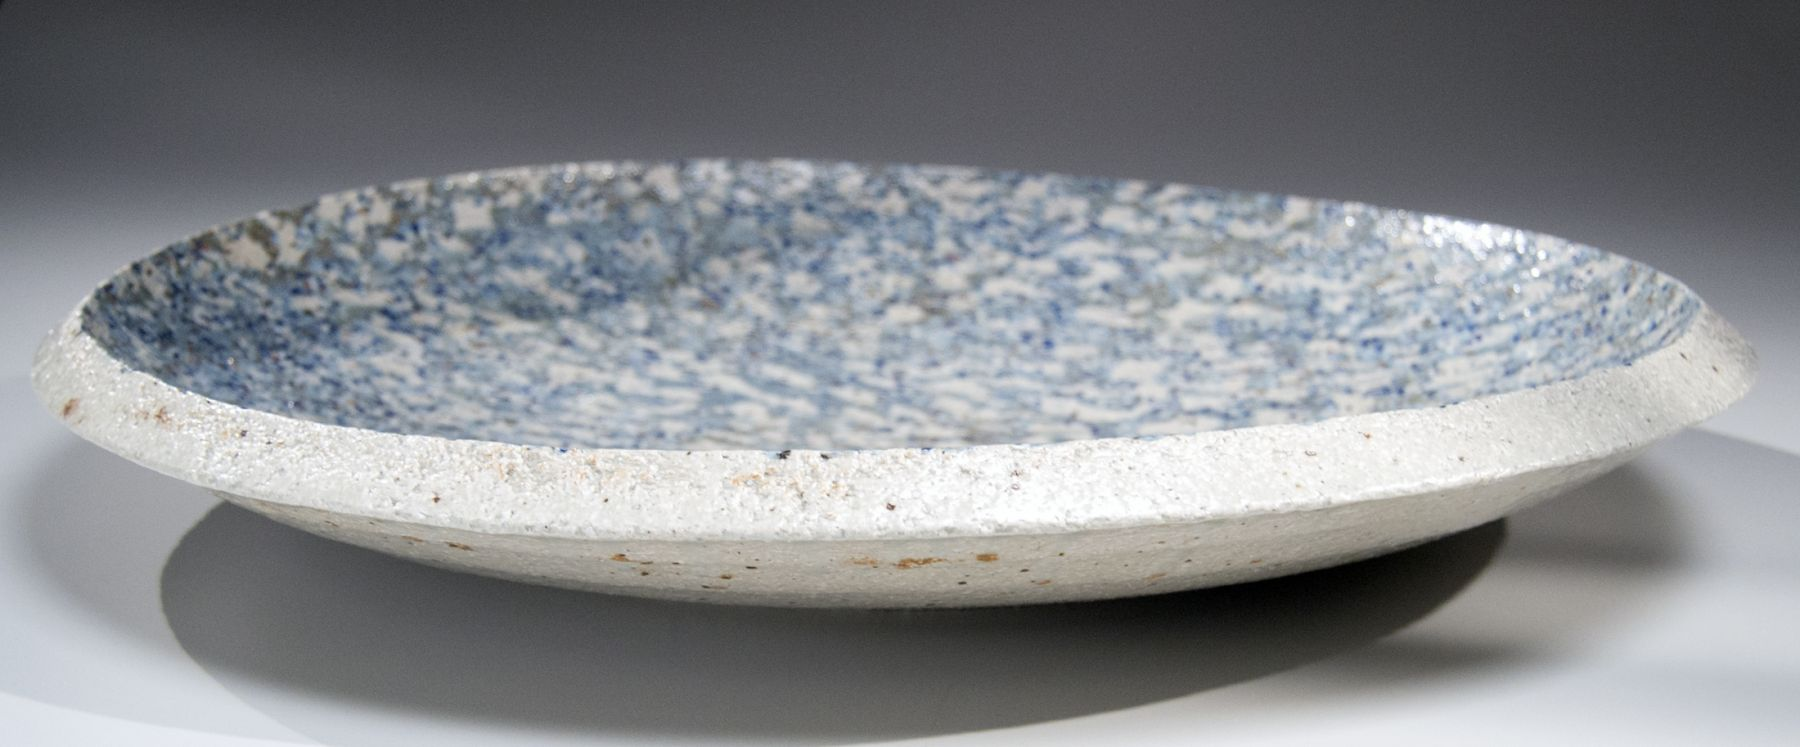 Matsui Kōsei (1927-2003), Platter with Streaming River and Floating Clouds pattern